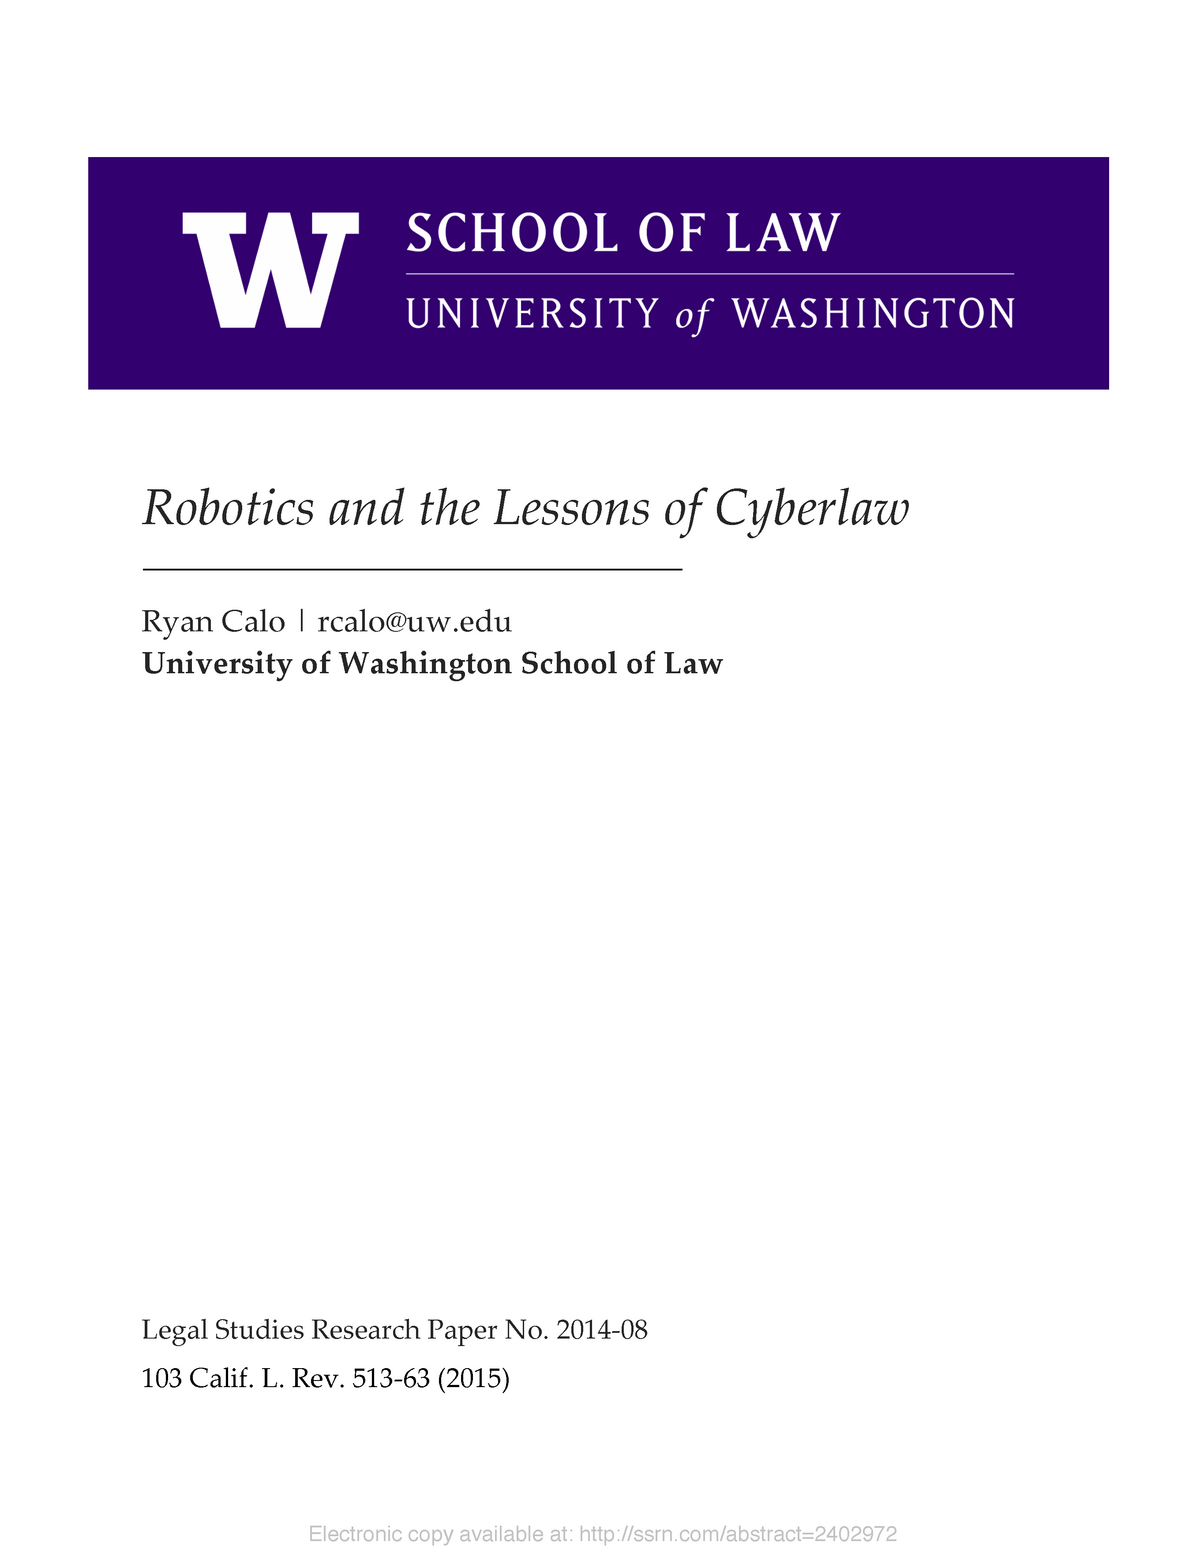 4  Calo robotics and the Lessons of Cyberlaw - WB3073: The